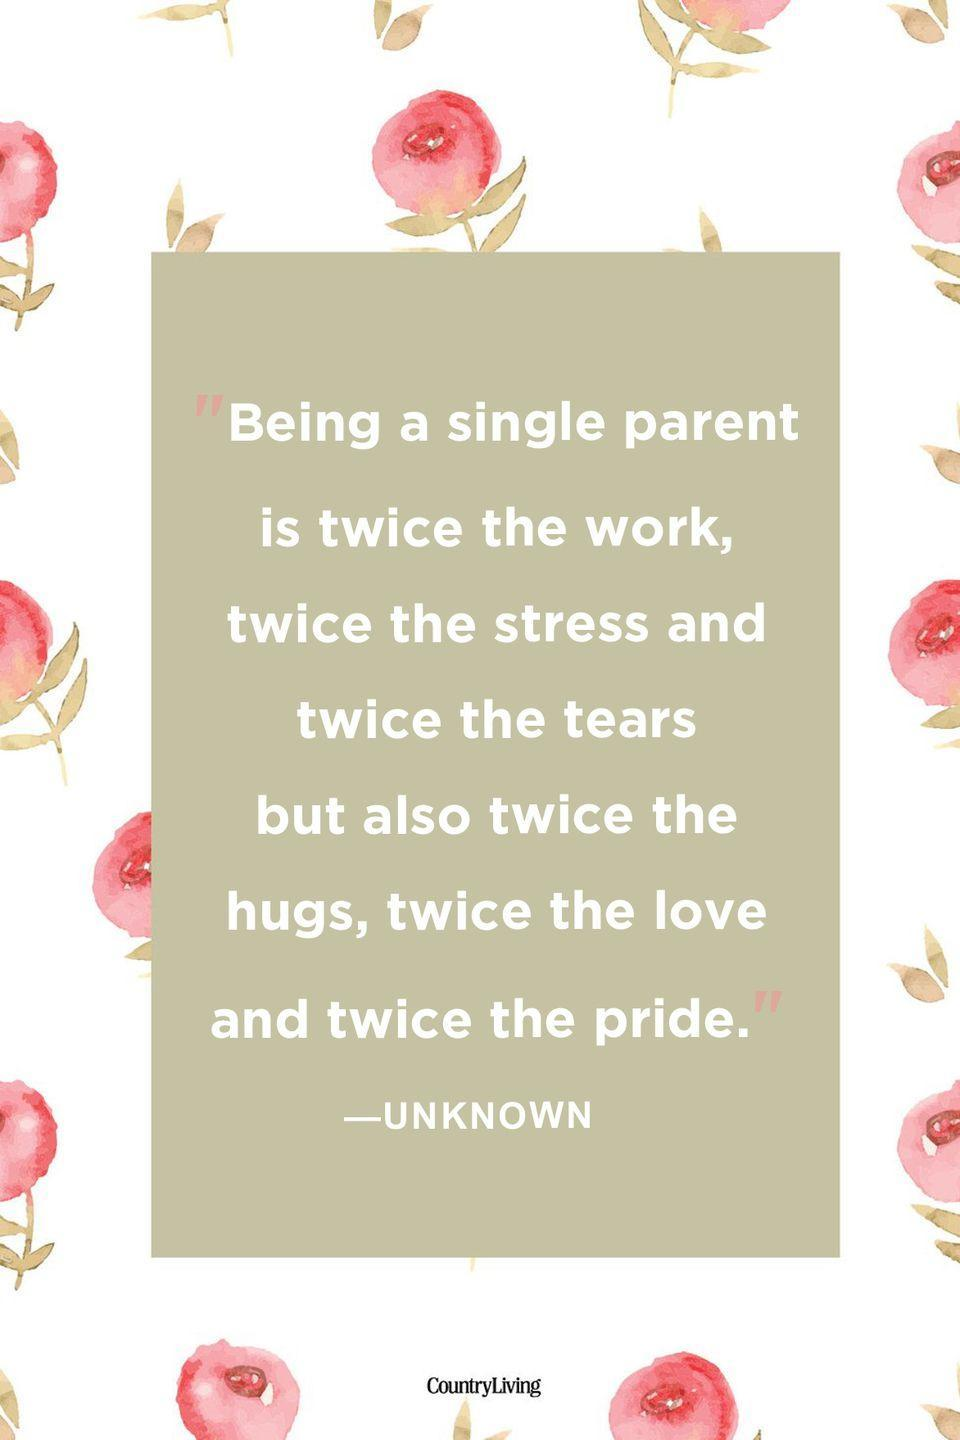 "<p>""Being a single parent is twice the work, twice the stress and twice the tears but also twice the hugs, twice the love and twice the pride.""</p>"